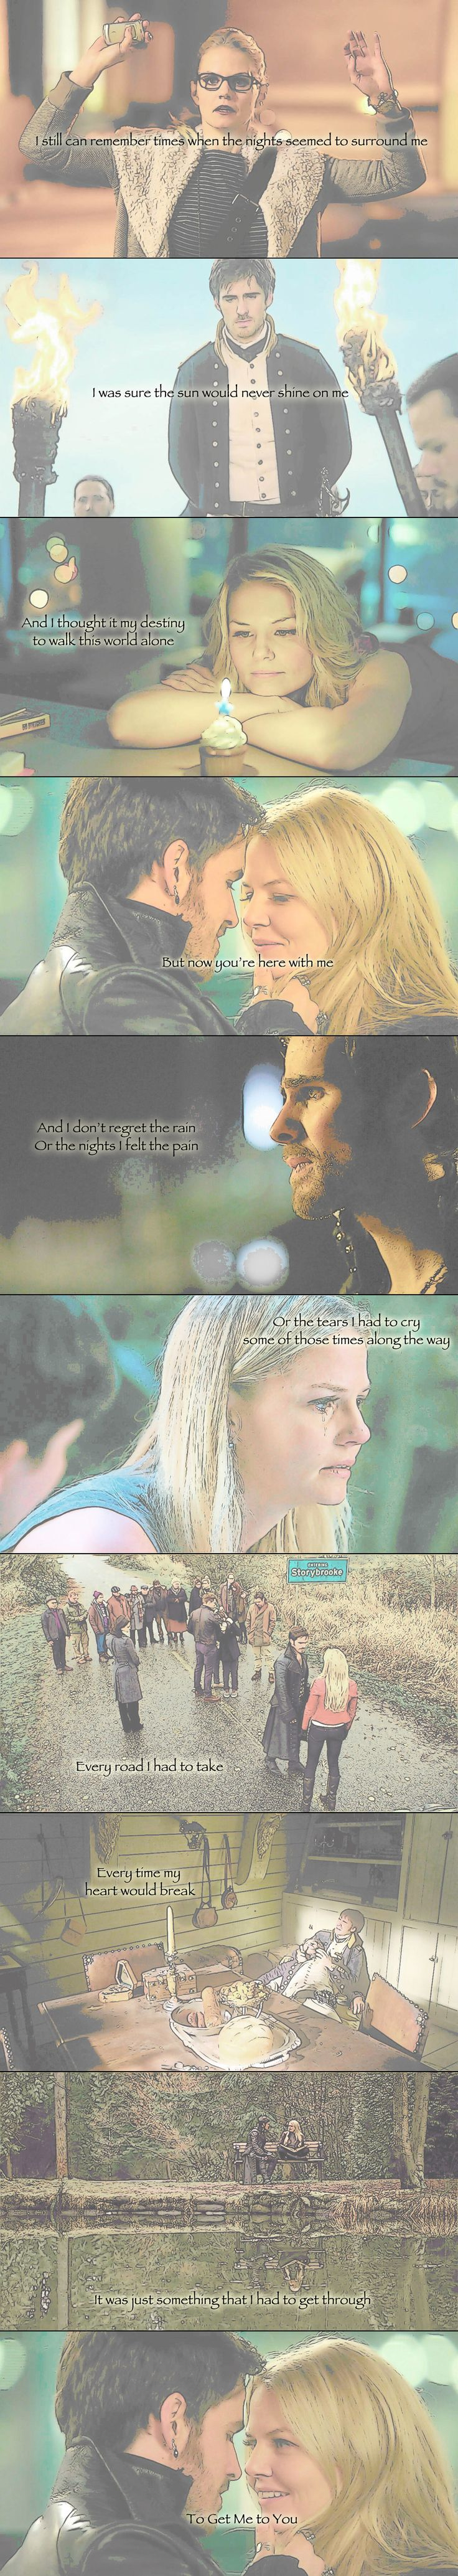 """Captain Swan- """"To Get Me to You""""........... I WISH I HAD THE SOBBING EMOTICON RIGHT NOW BUT I'M ON A COMPUTER"""